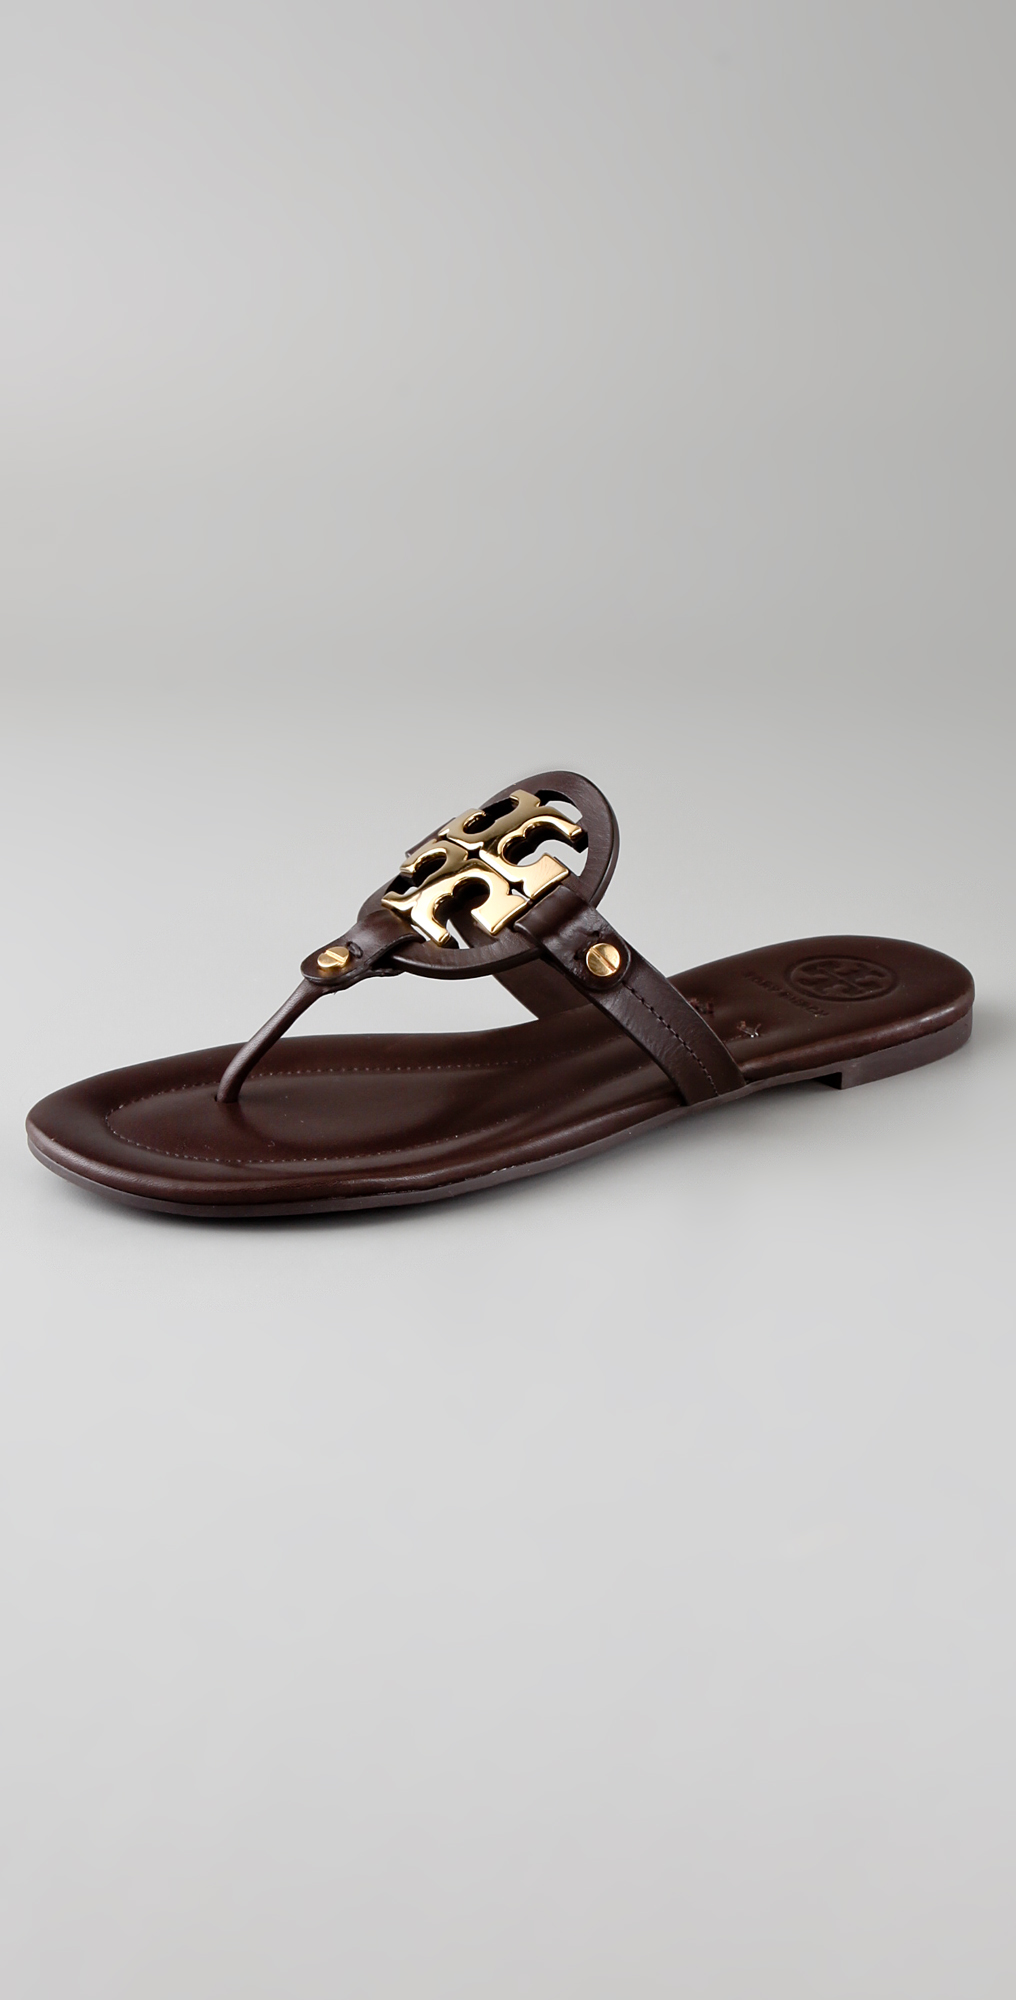 5fe8c2c09884 Tory Burch Miller Flat Thong Sandals on PopScreen